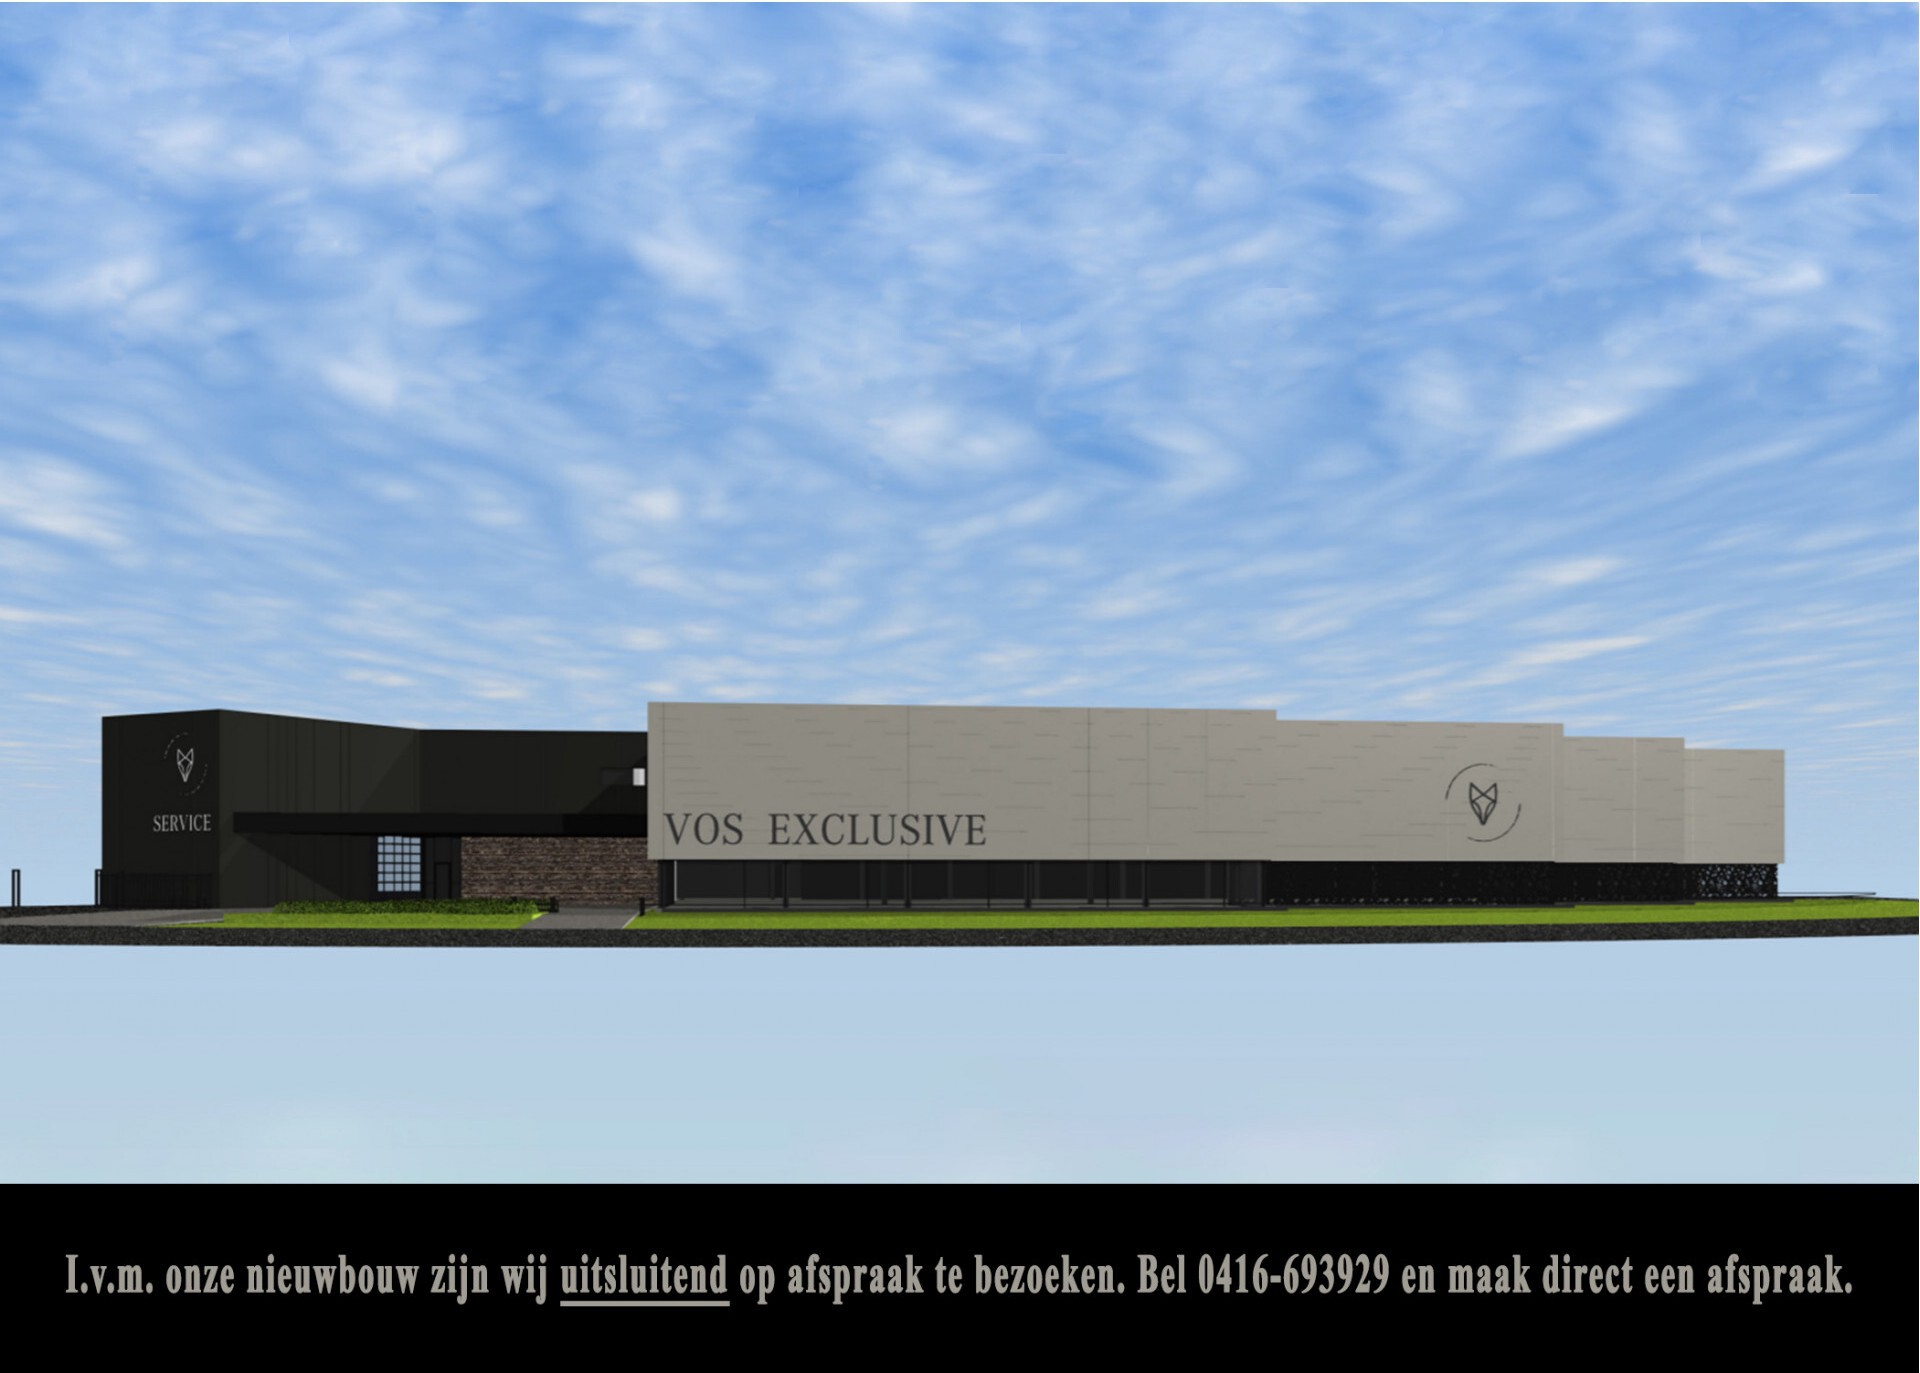 Mercedes-Benz E-Klasse Estate 450 4-M AMG Night Standkachel/Rij-assist/Keyless/Trhk/Burmester/Mem/360/Widescreen Aut9 Foto 6